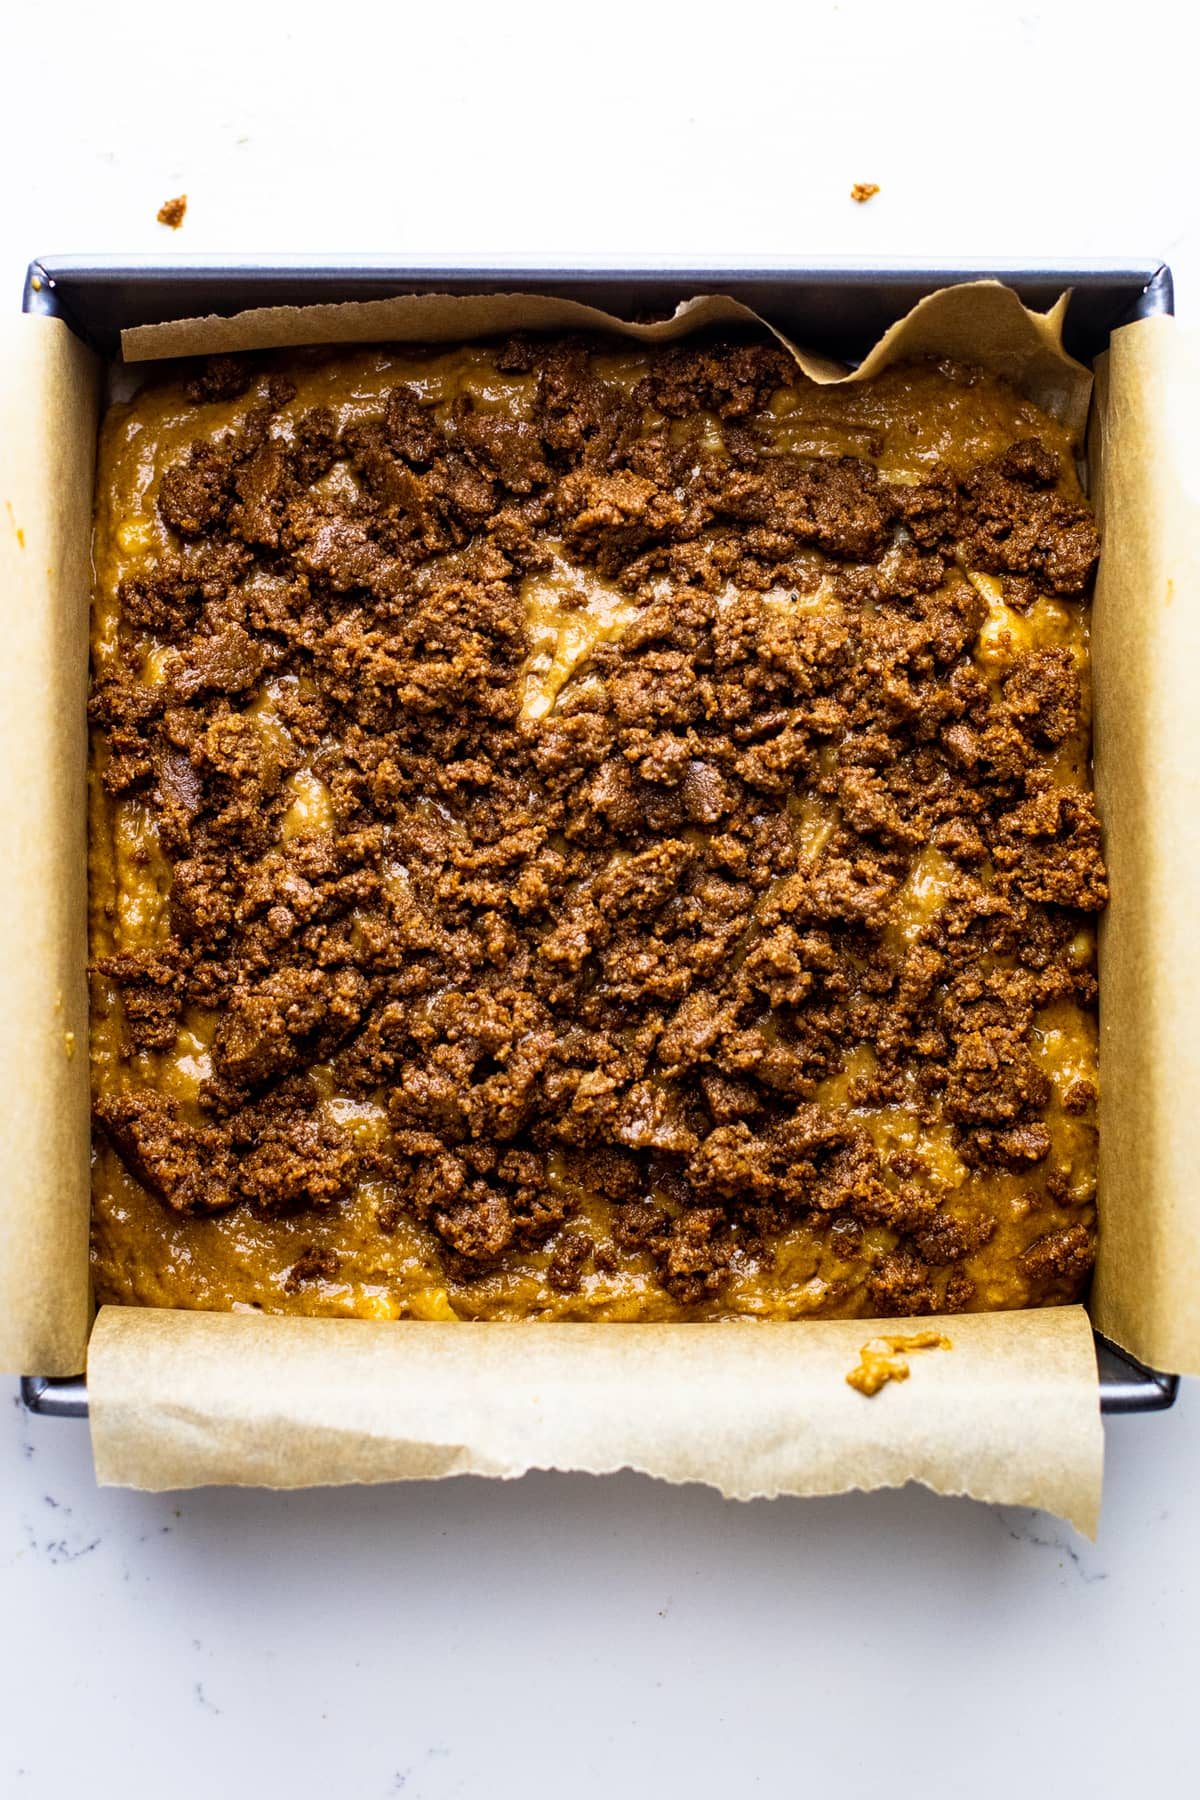 A square 8x8 inch pan with coffee cake batter in it and crumble over top.